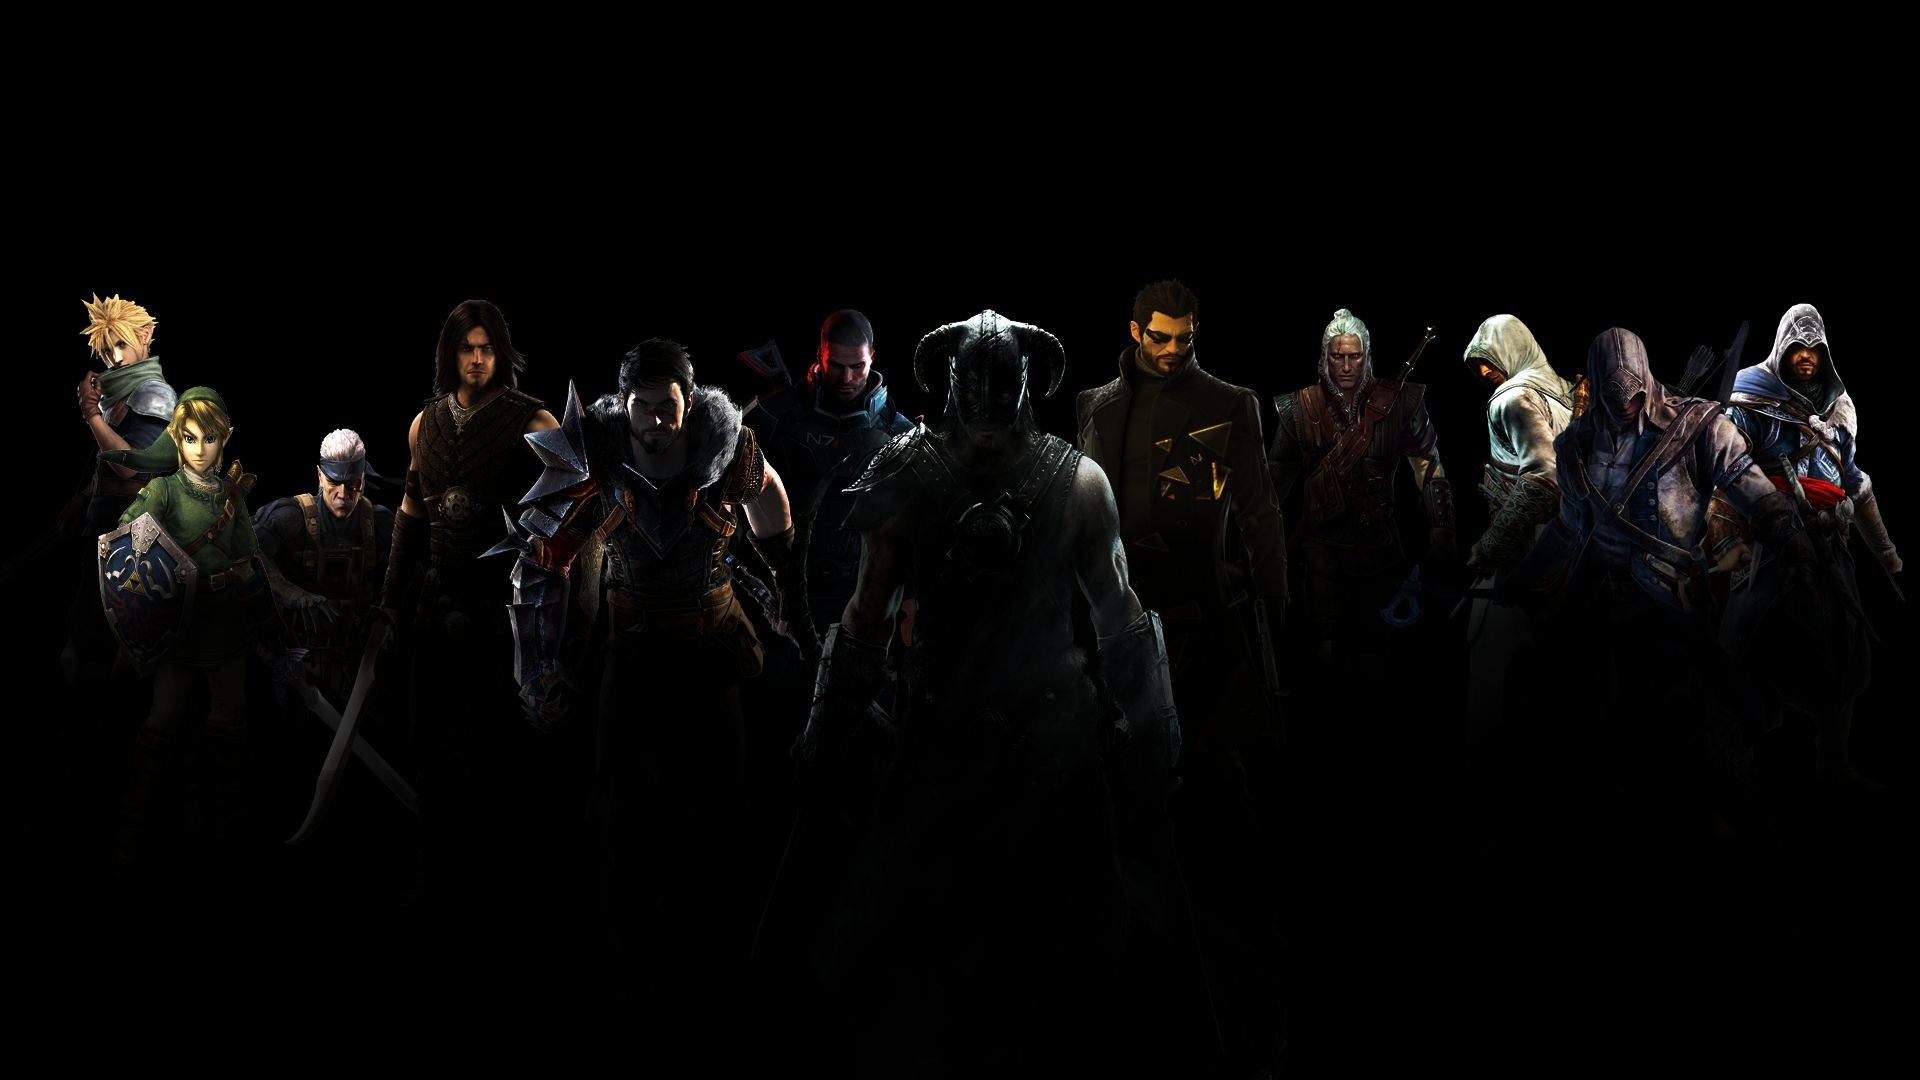 Video Game Wallpapers (27+)